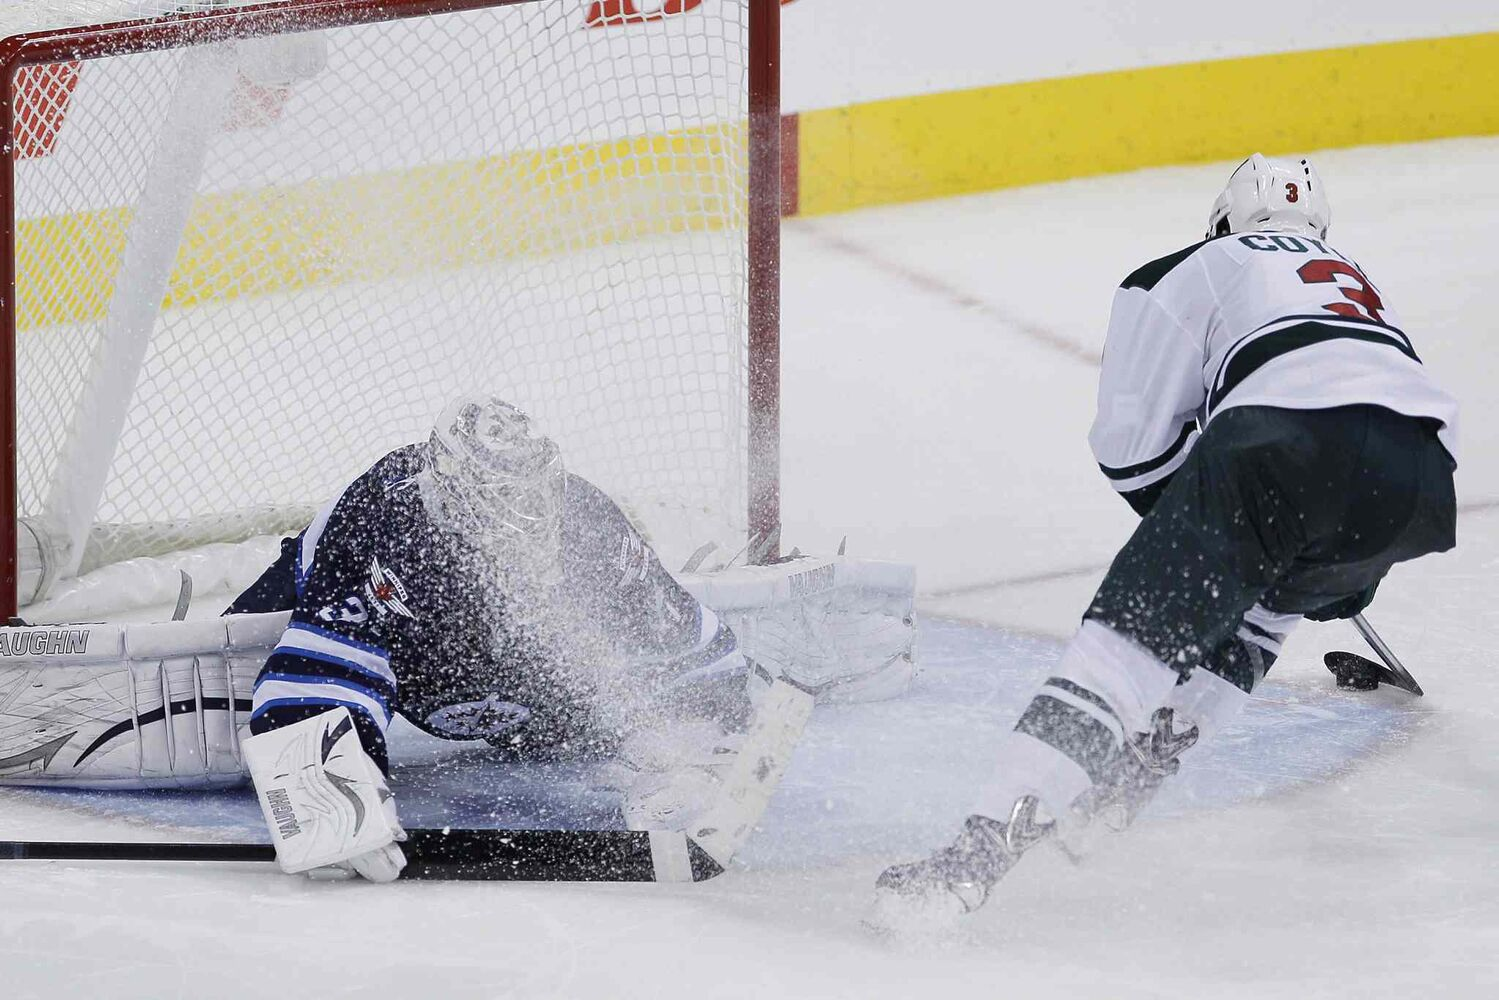 Minnesota Wild's Charlie Coyle scores on his shootout attempt for the win. (JOHN WOODS / THE CANADIAN PRESS)